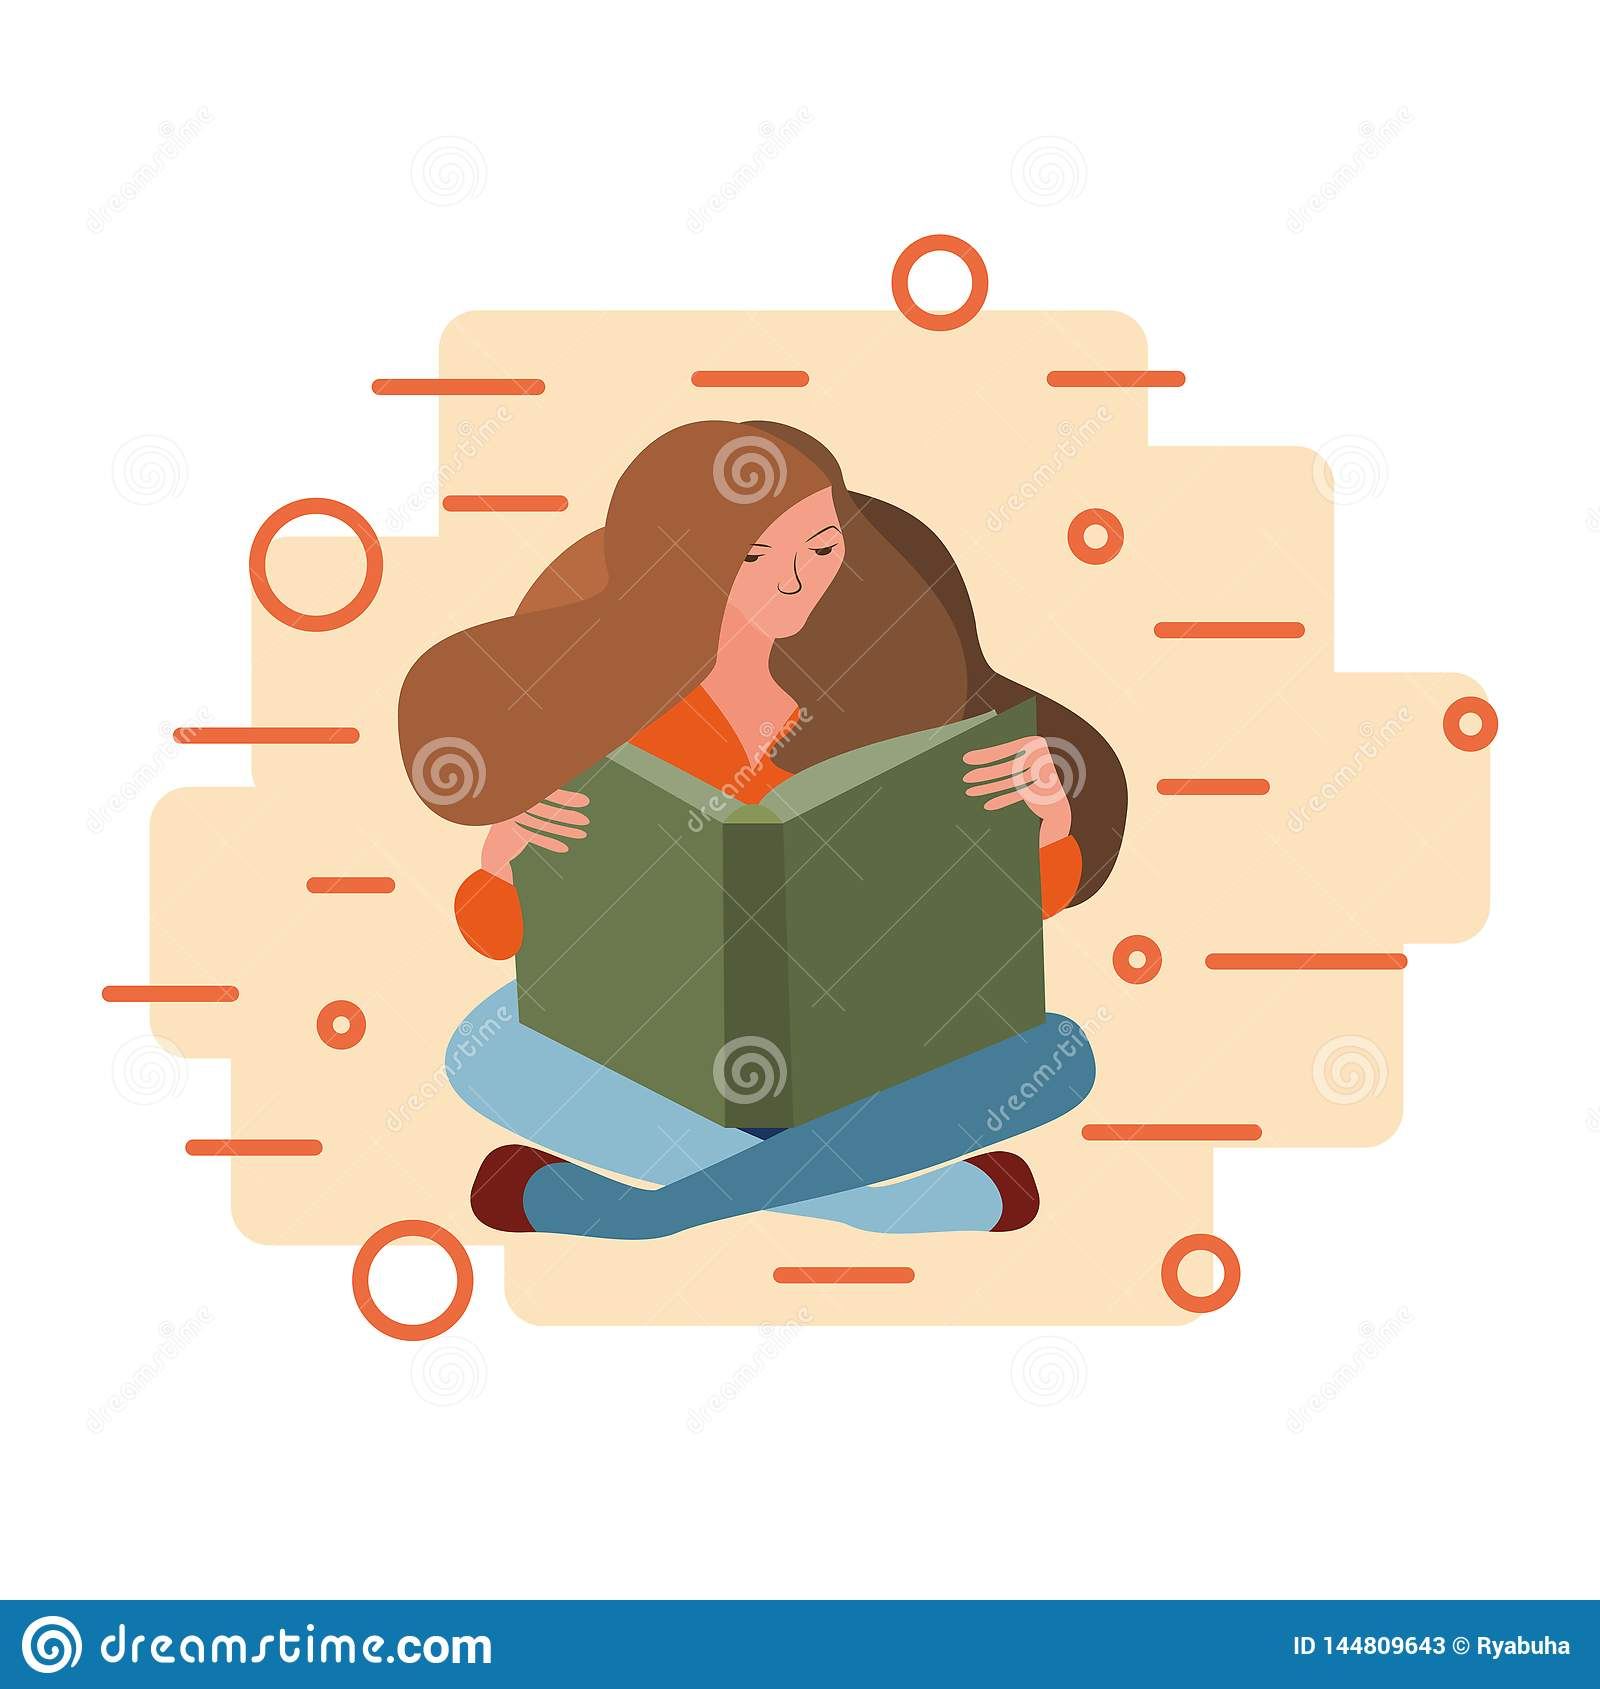 Woman sitting down reading a book on an abstract background.